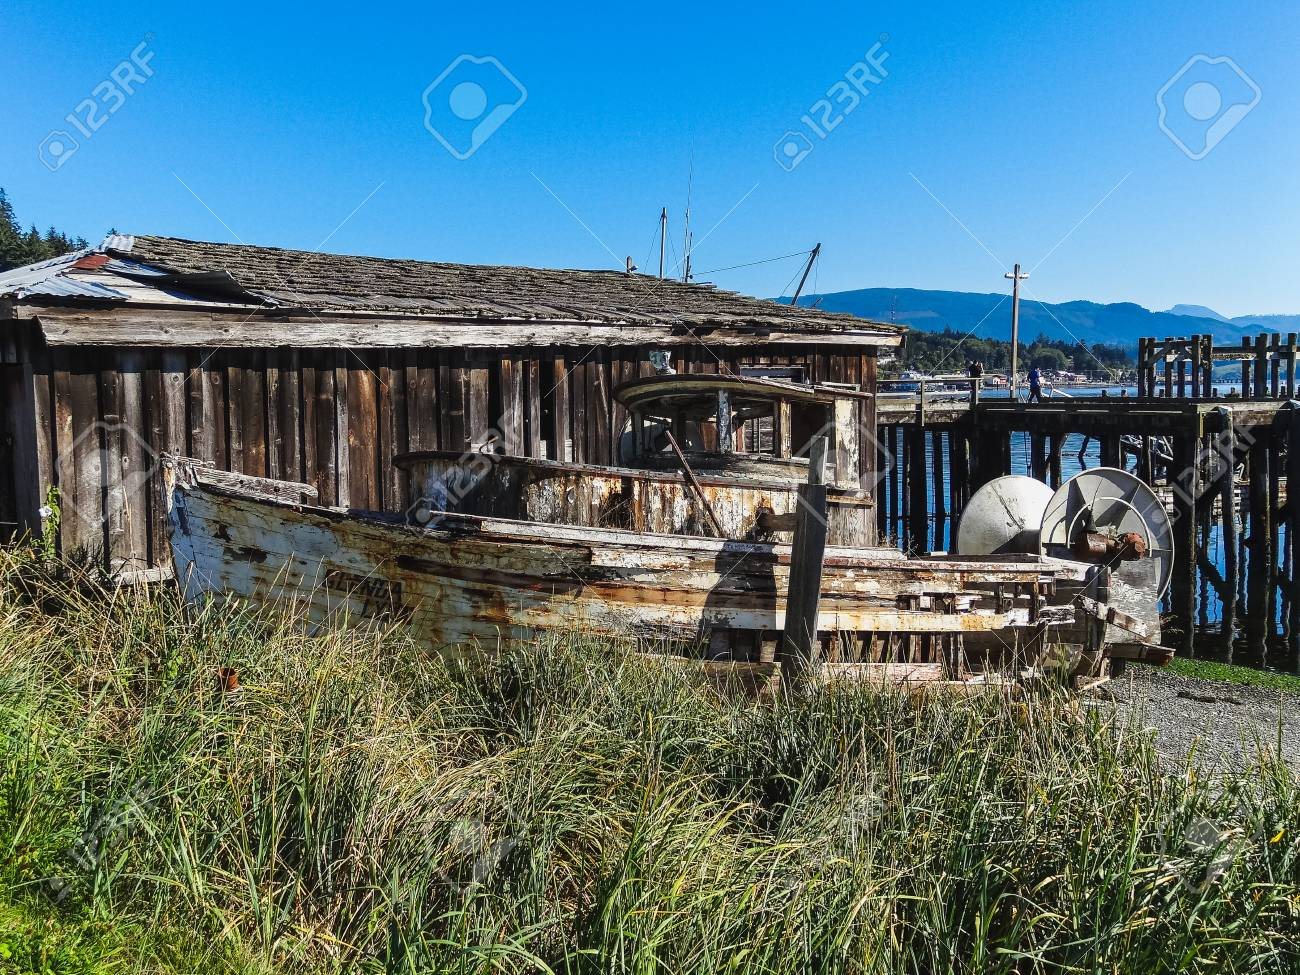 An Old Wooden Fishing Boat In Nova Scotia Canada Stock Photo Picture And Royalty Free Image Image 97465168